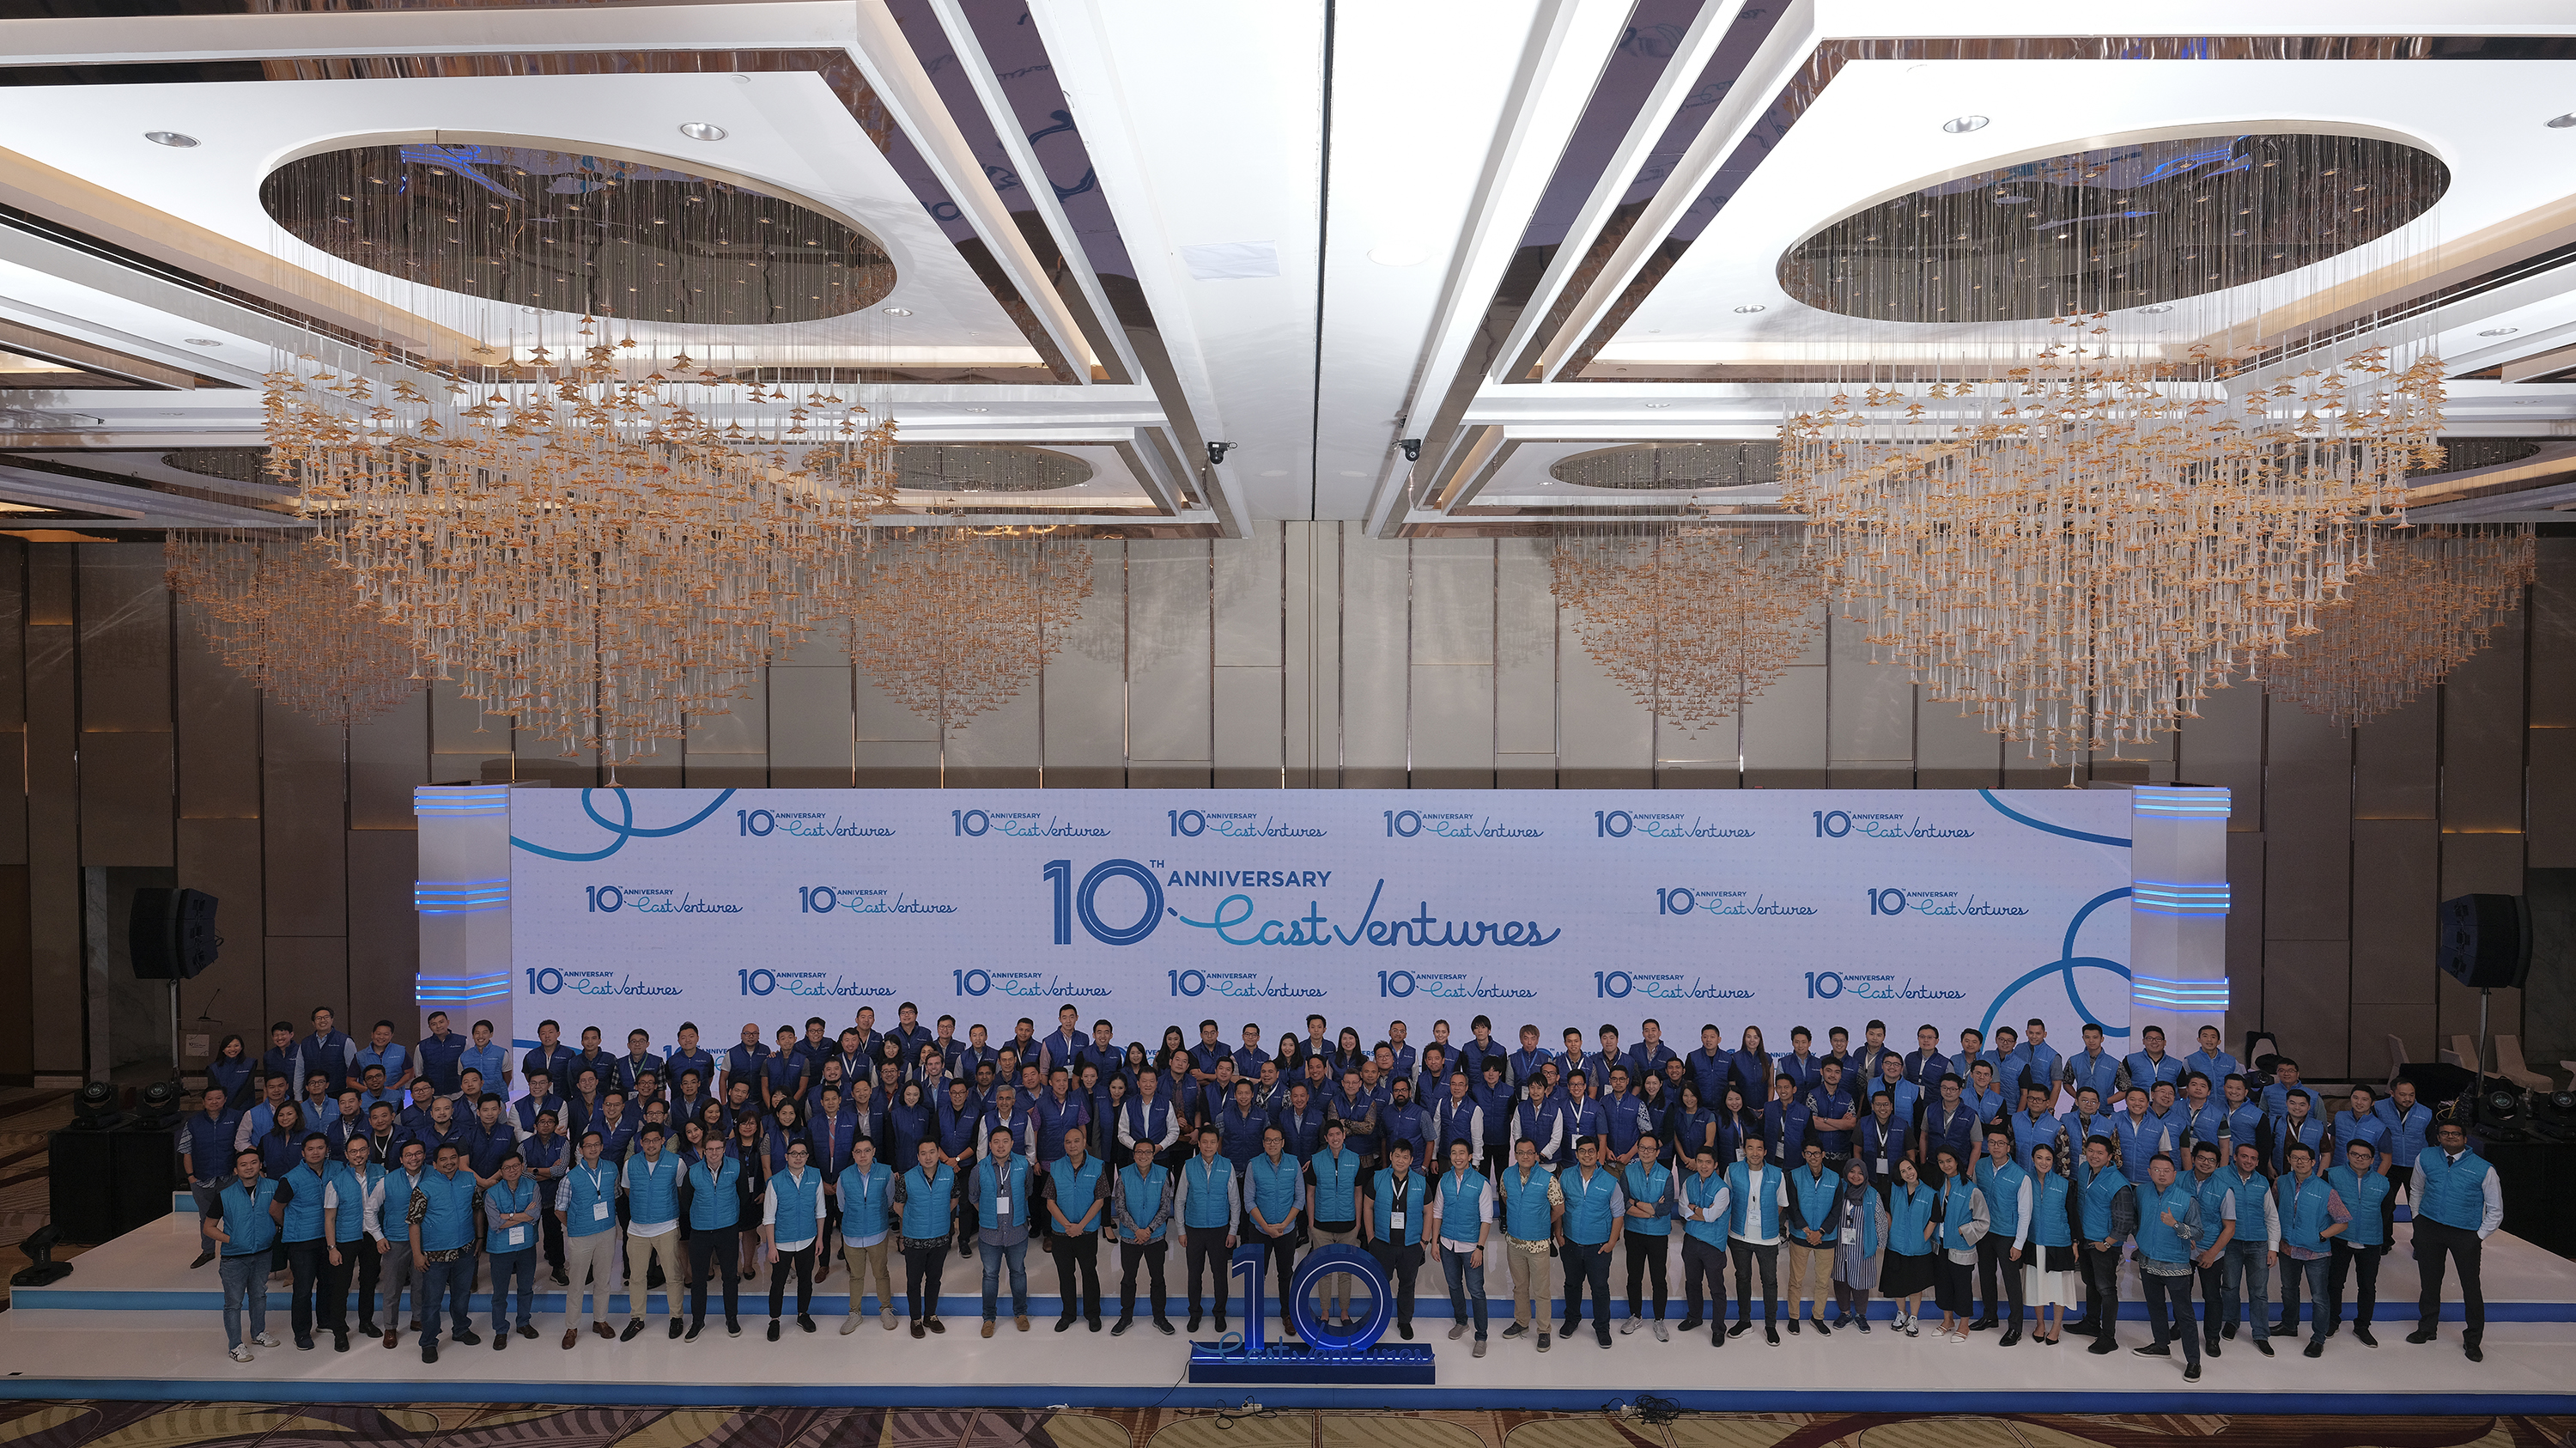 East Ventures Marks 10 Year Anniversary, Commits to Generating More Impact in Indonesia